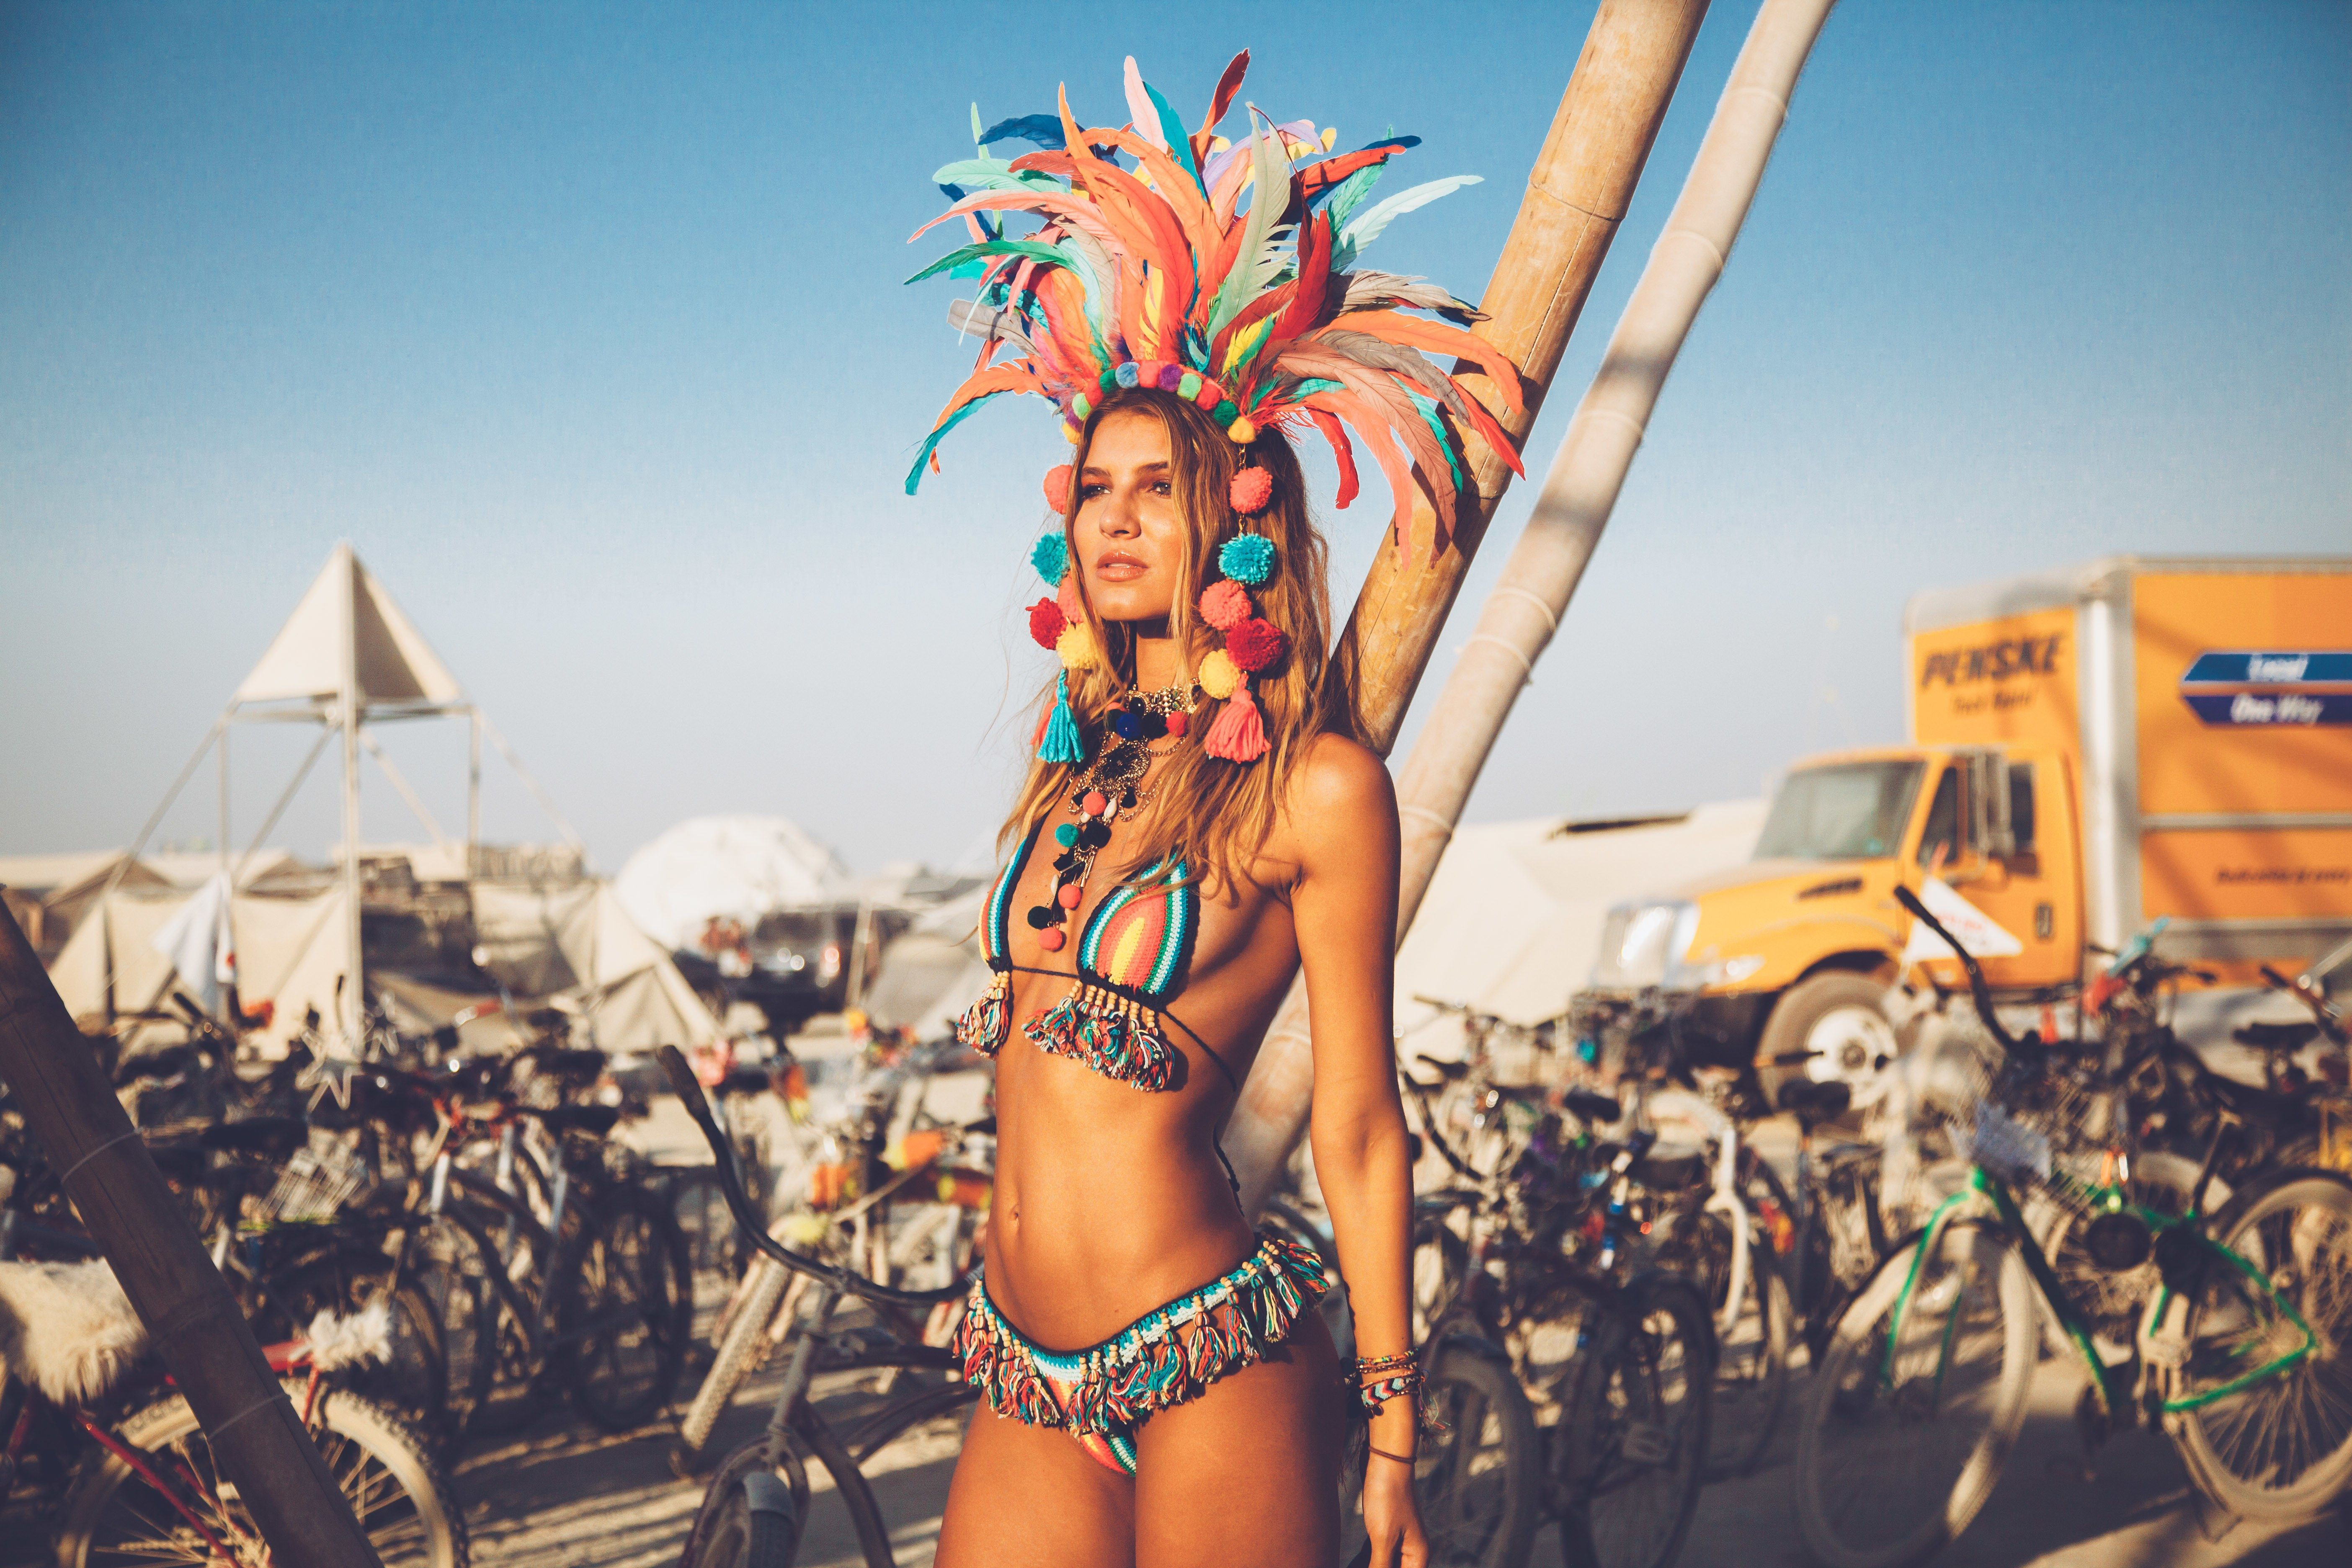 Exclusive: Inside Burning Man 2017, the World's Most ... Outrageous Outfits From Burning Man